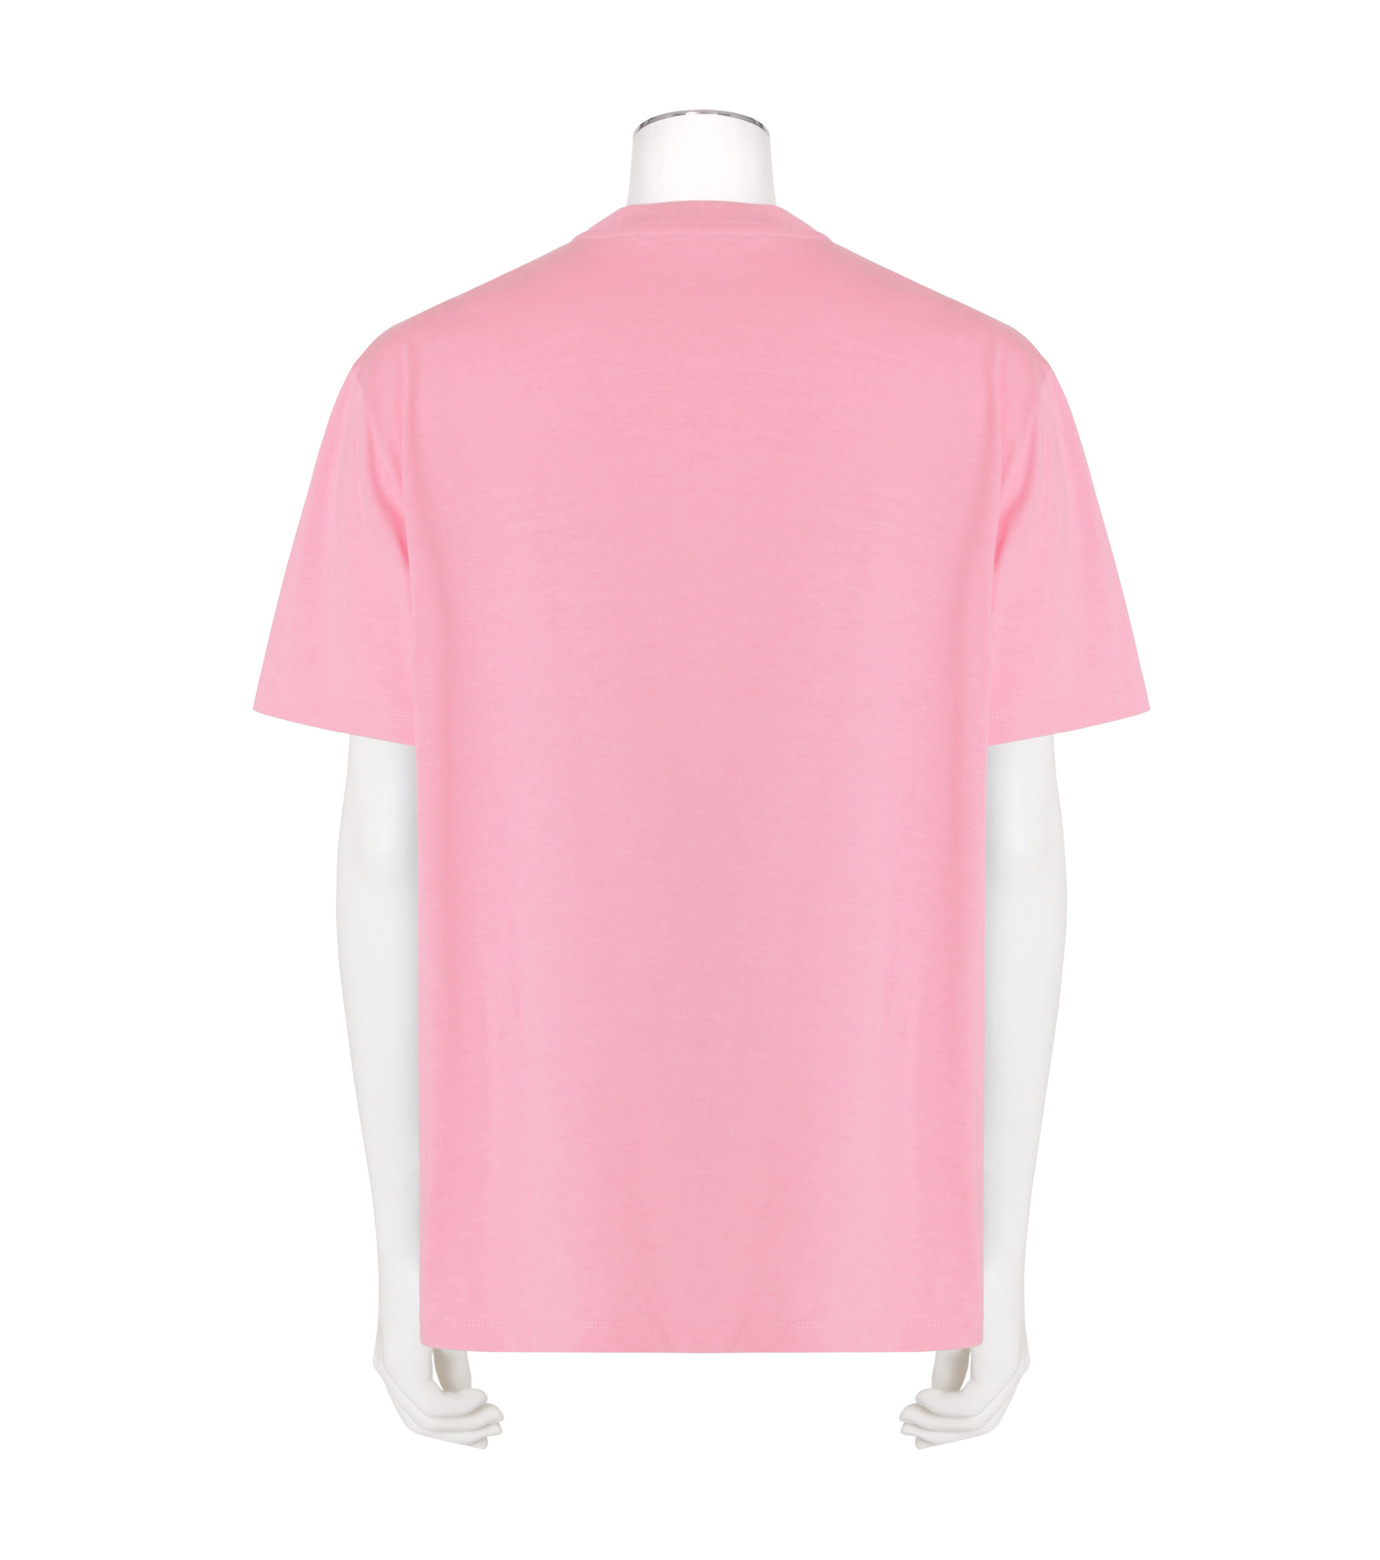 Alexander Wang(アレキサンダーワン)のStrict Print T-PINK(カットソー/cut and sewn)-609024F16-72 拡大詳細画像2